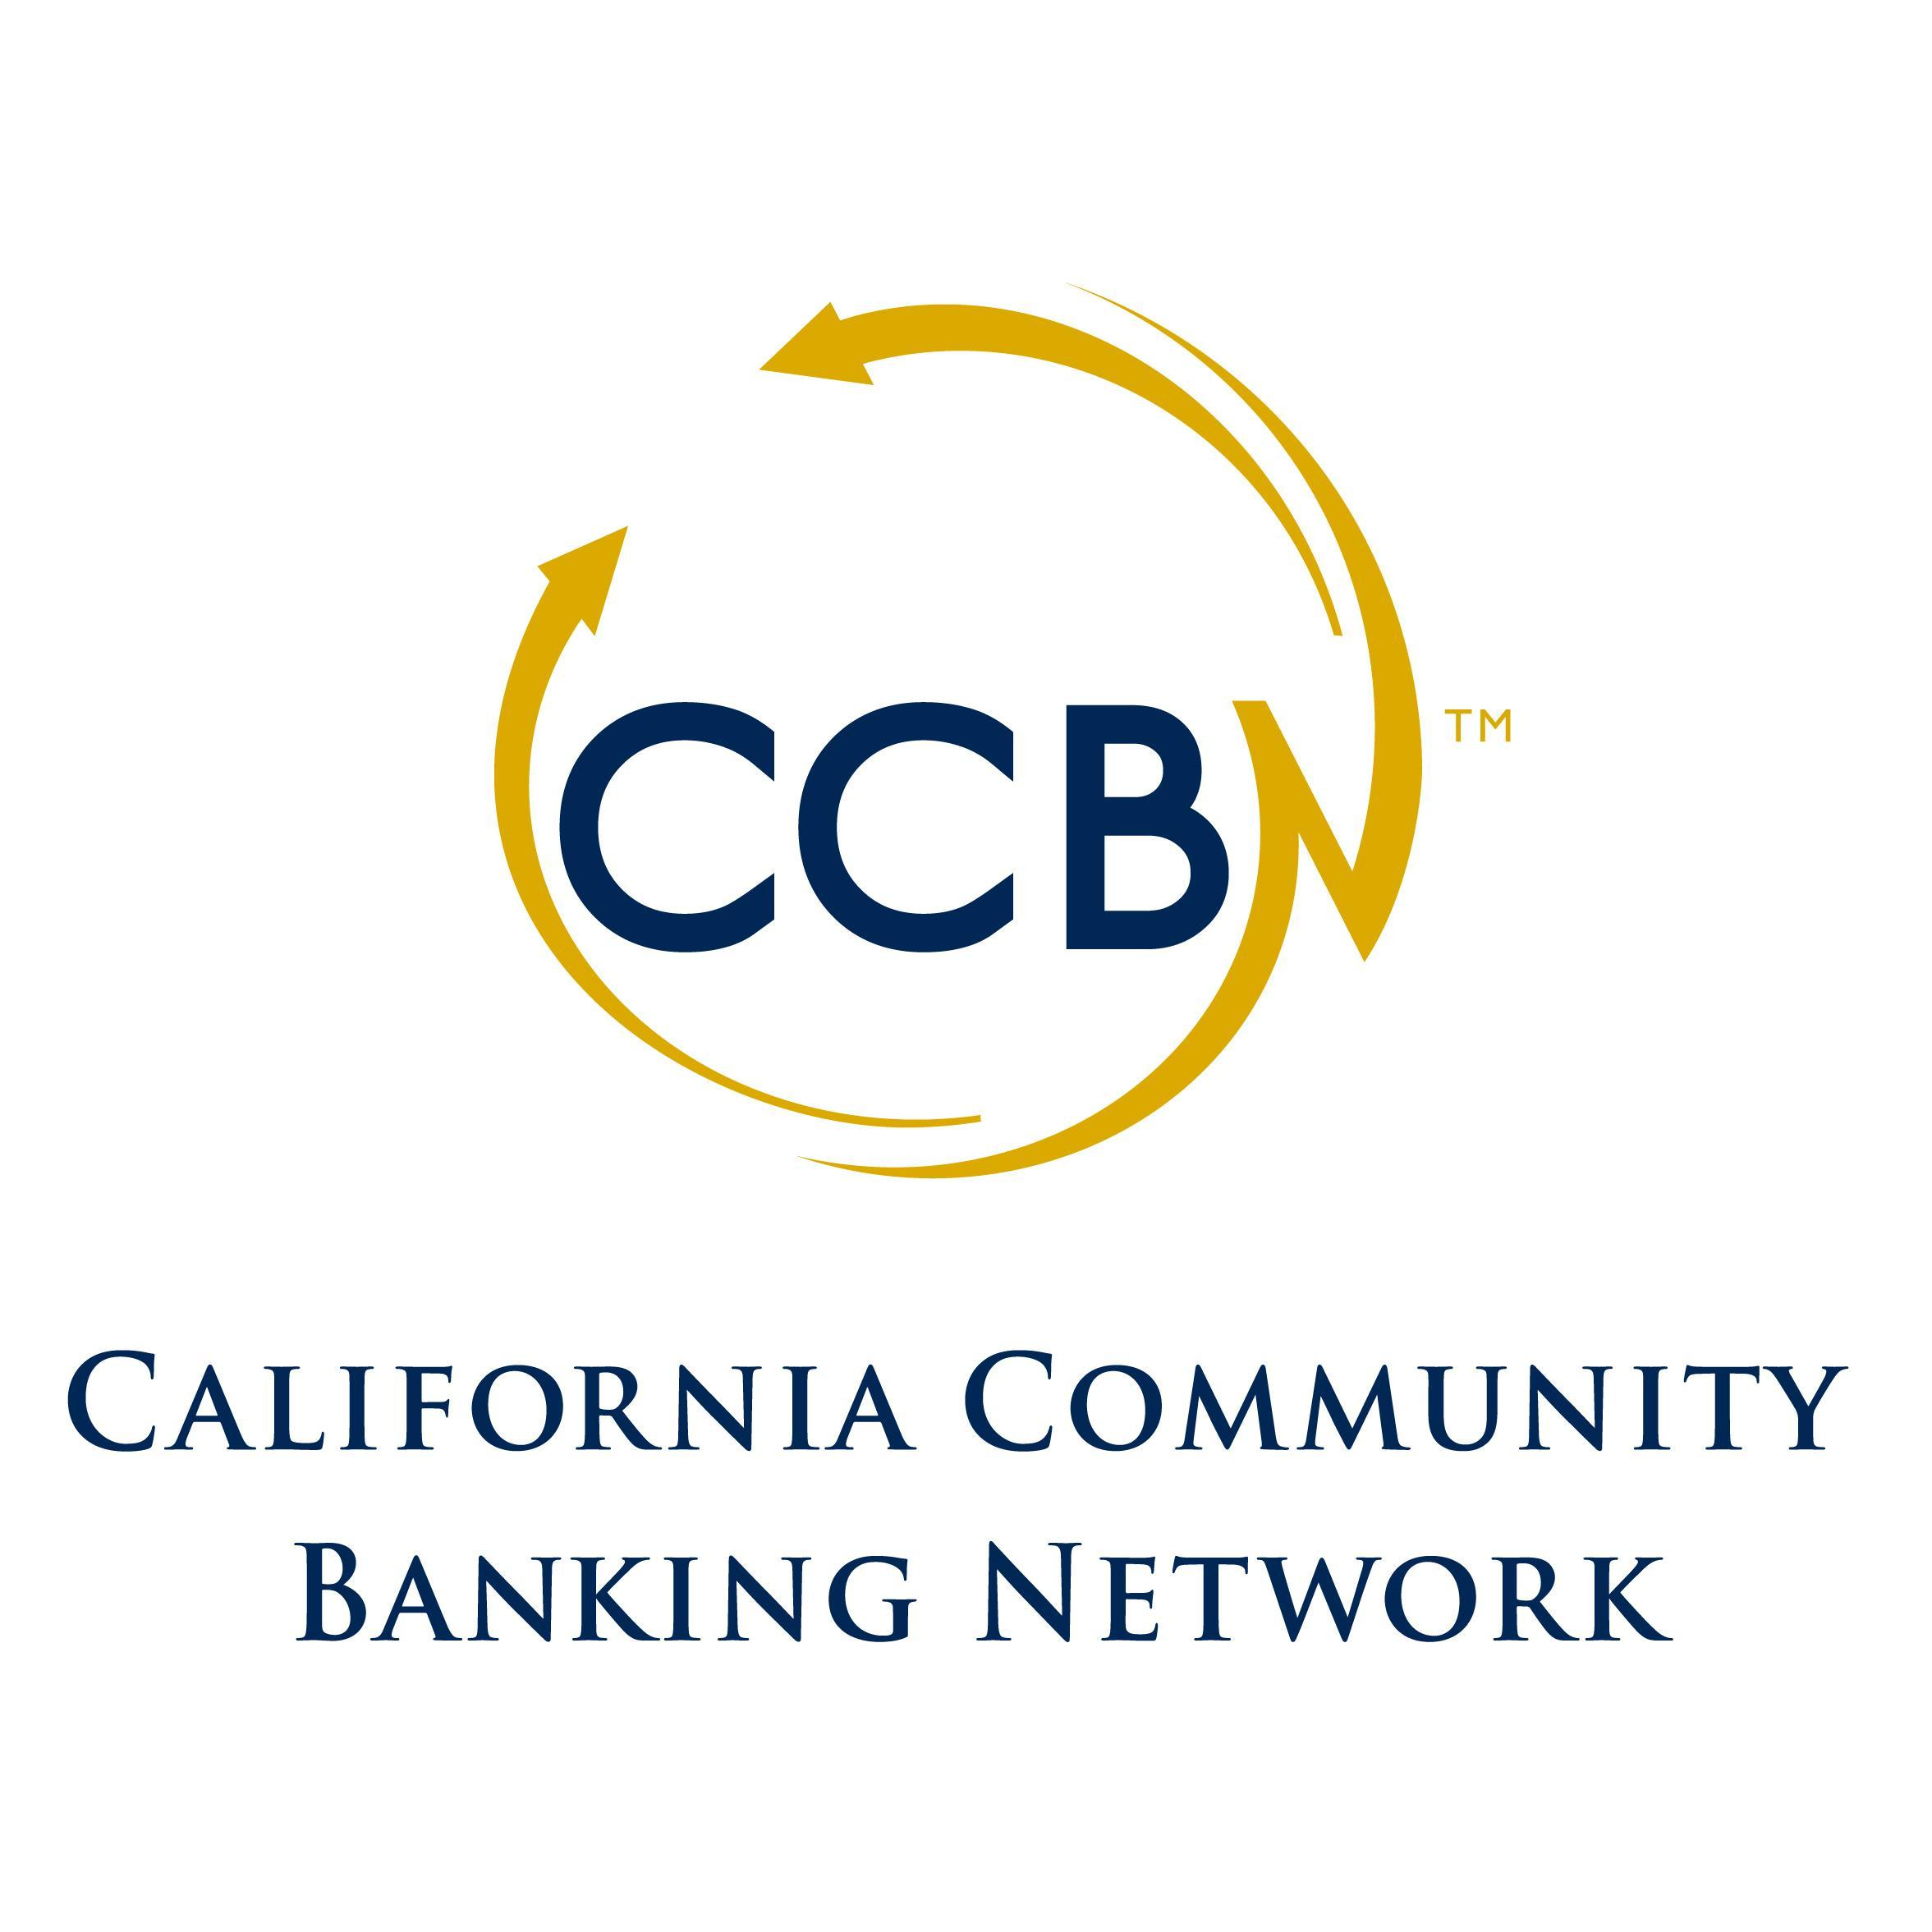 Ccbn On Twitter Top Banker Panel No 2 Kent Steinwert Farmers And